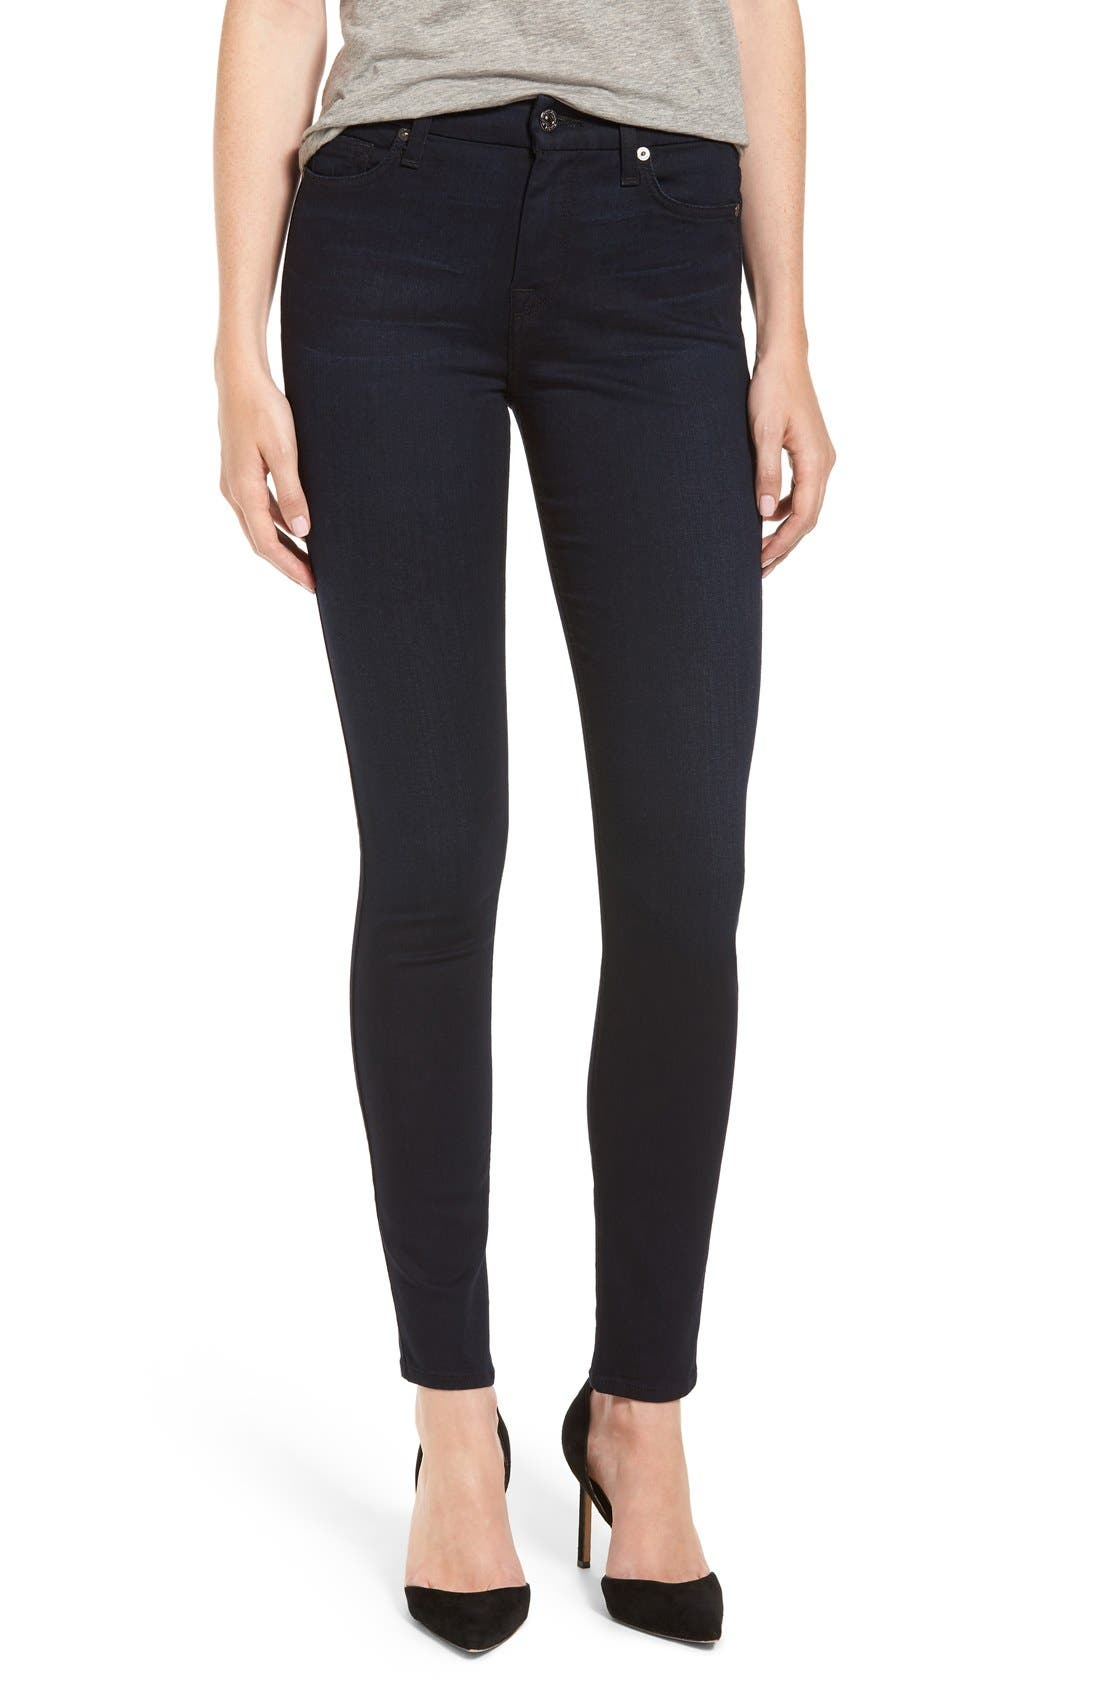 7 For All Mankind b(air) High Waist Skinny Jeans,                         Main,                         color, Blue/ Black River Thames